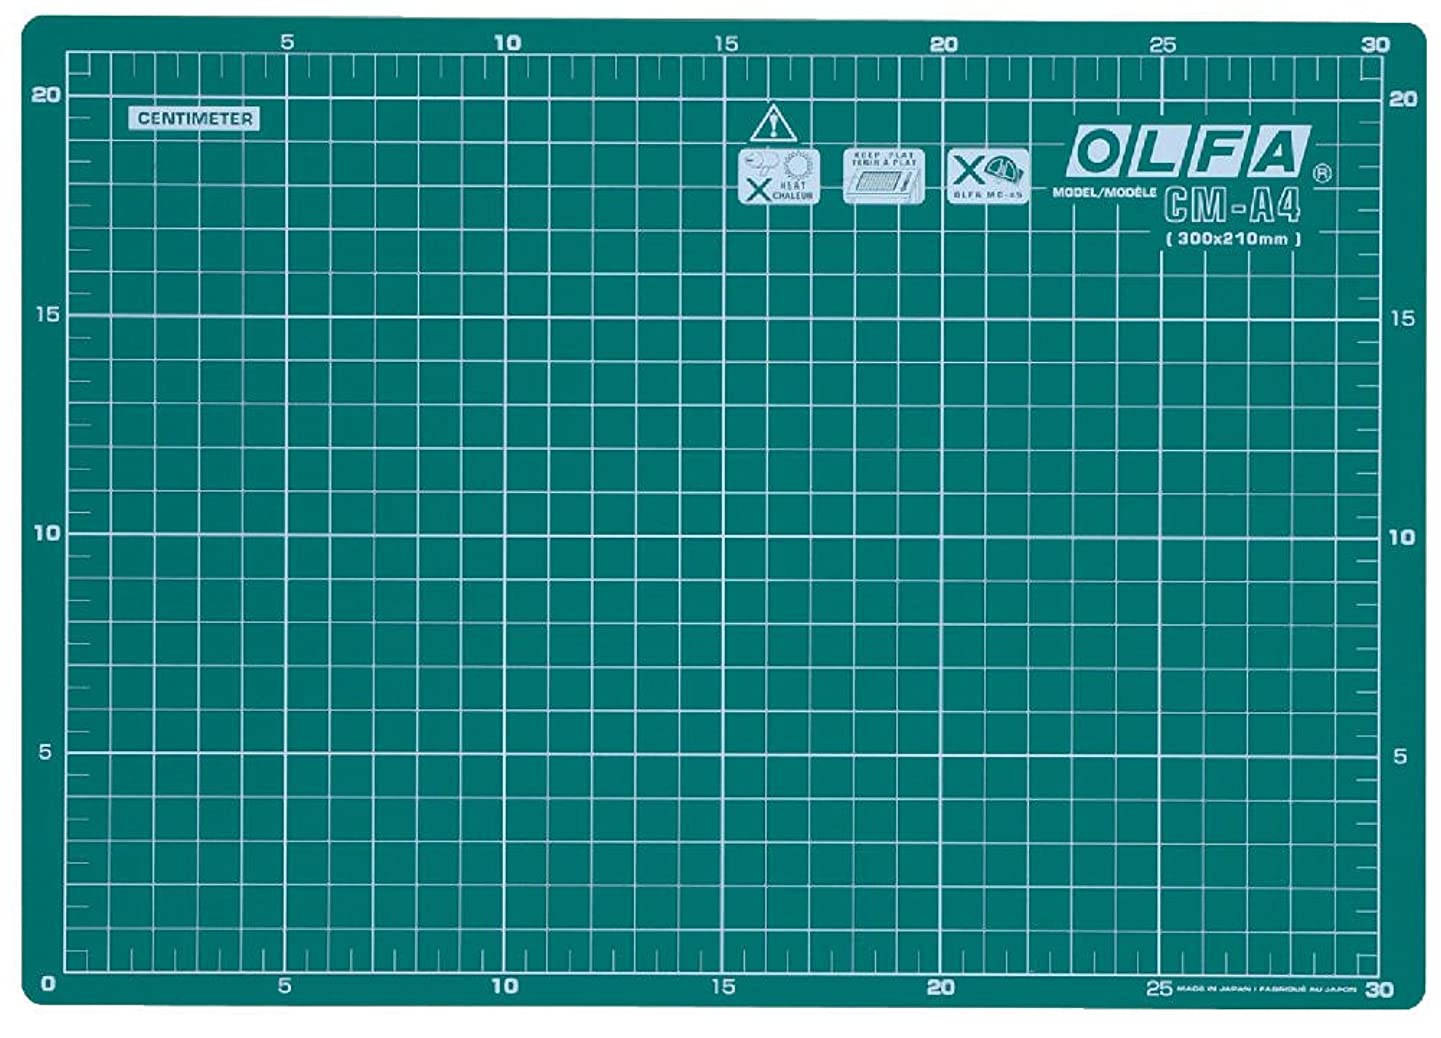 Olfa CM-A4 Self Healing Double Sided Multi-Purpose Cutting Mat by Olfa ypogmeknxszq